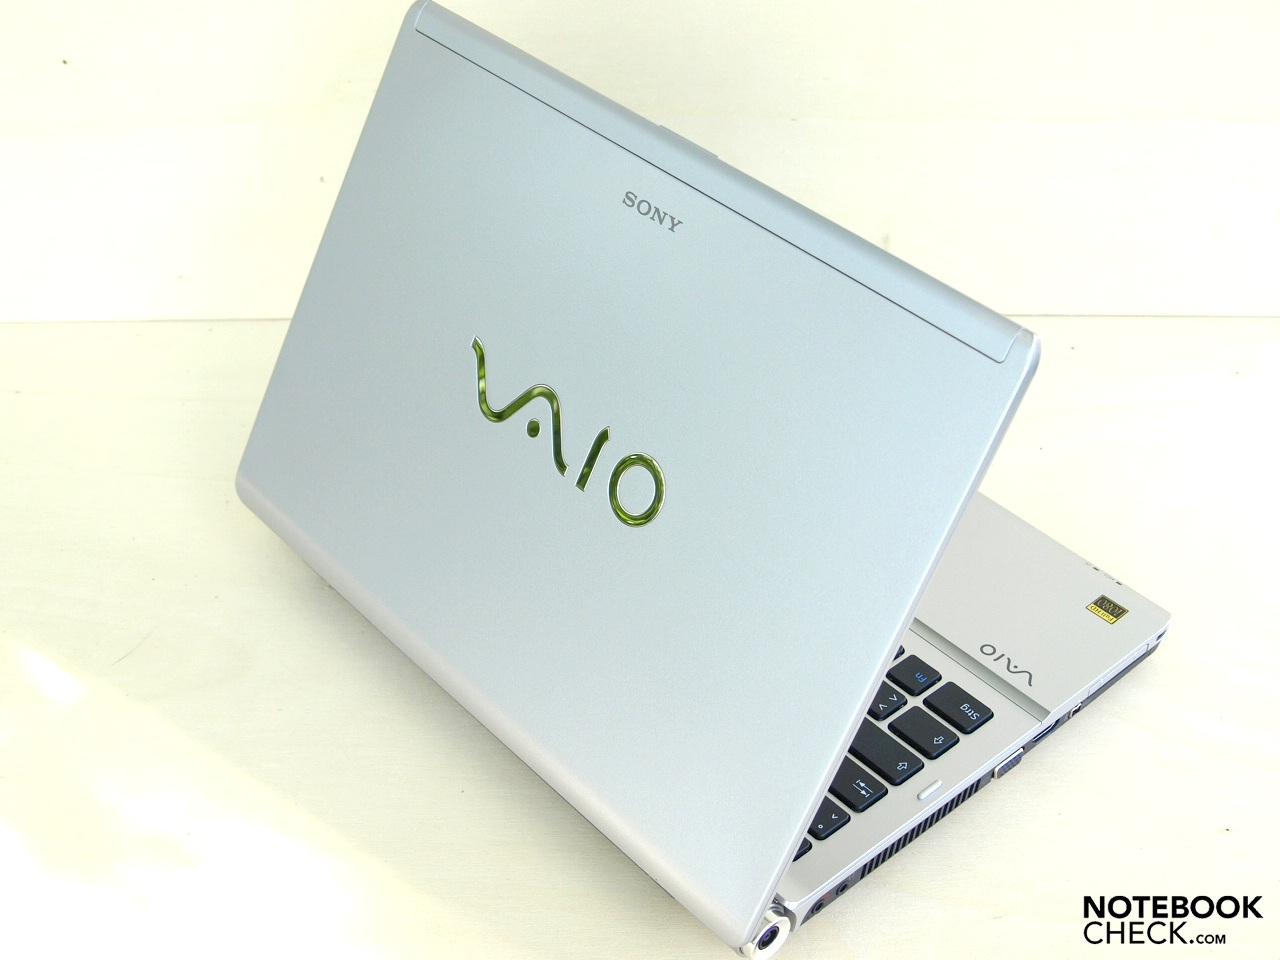 Sony vaio t13 review 2 alphr - Reviewed Sony Vaio Vgn Sr41m S